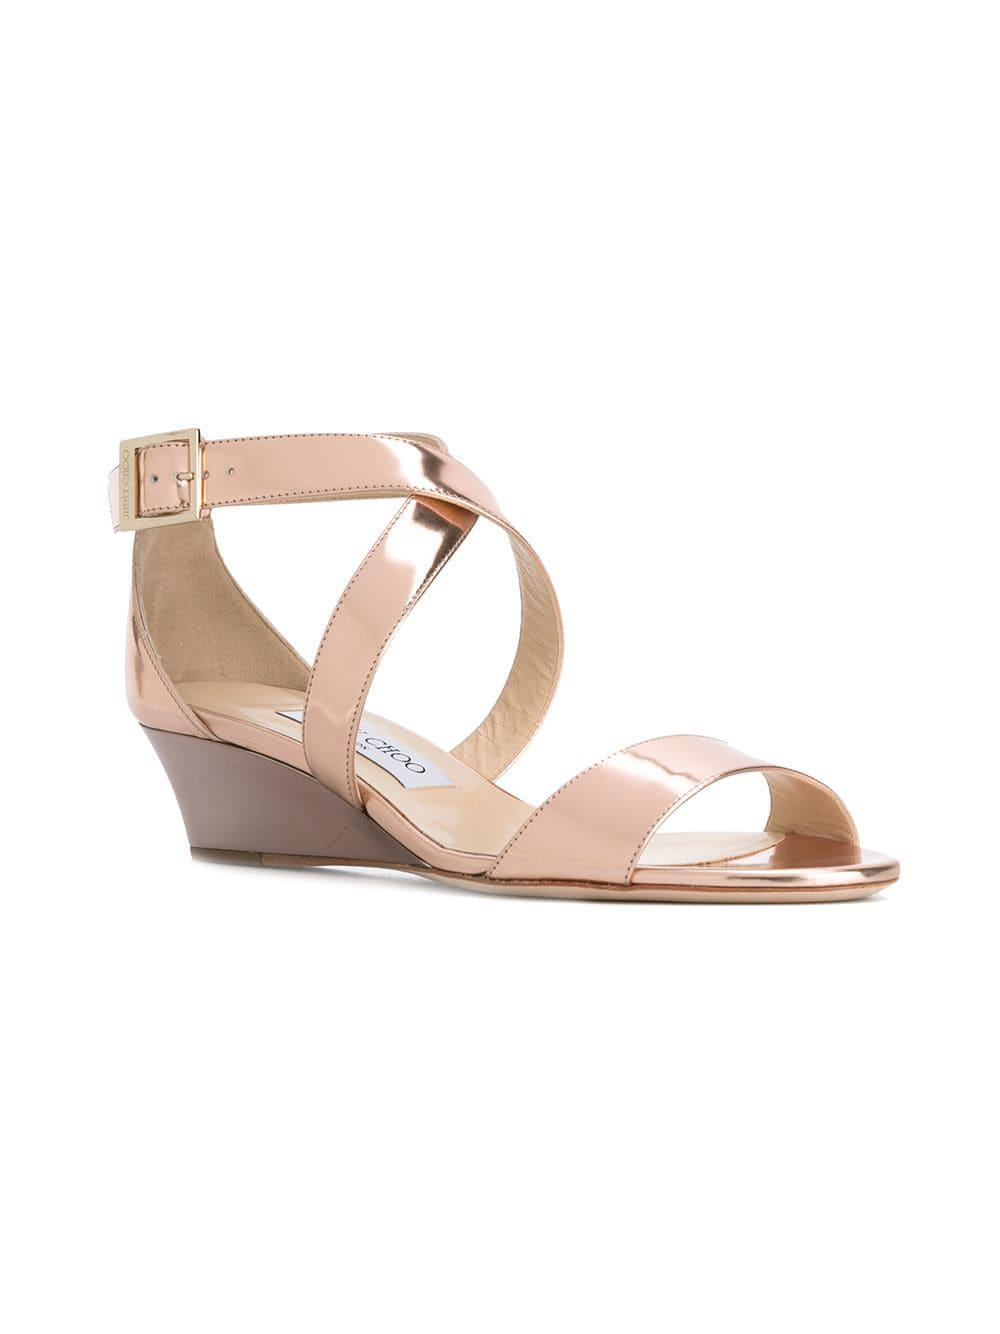 27ff6542b455 Jimmy Choo - Wedge Sandals - Women - Leather patent Leather - 36 in Pink -  Lyst